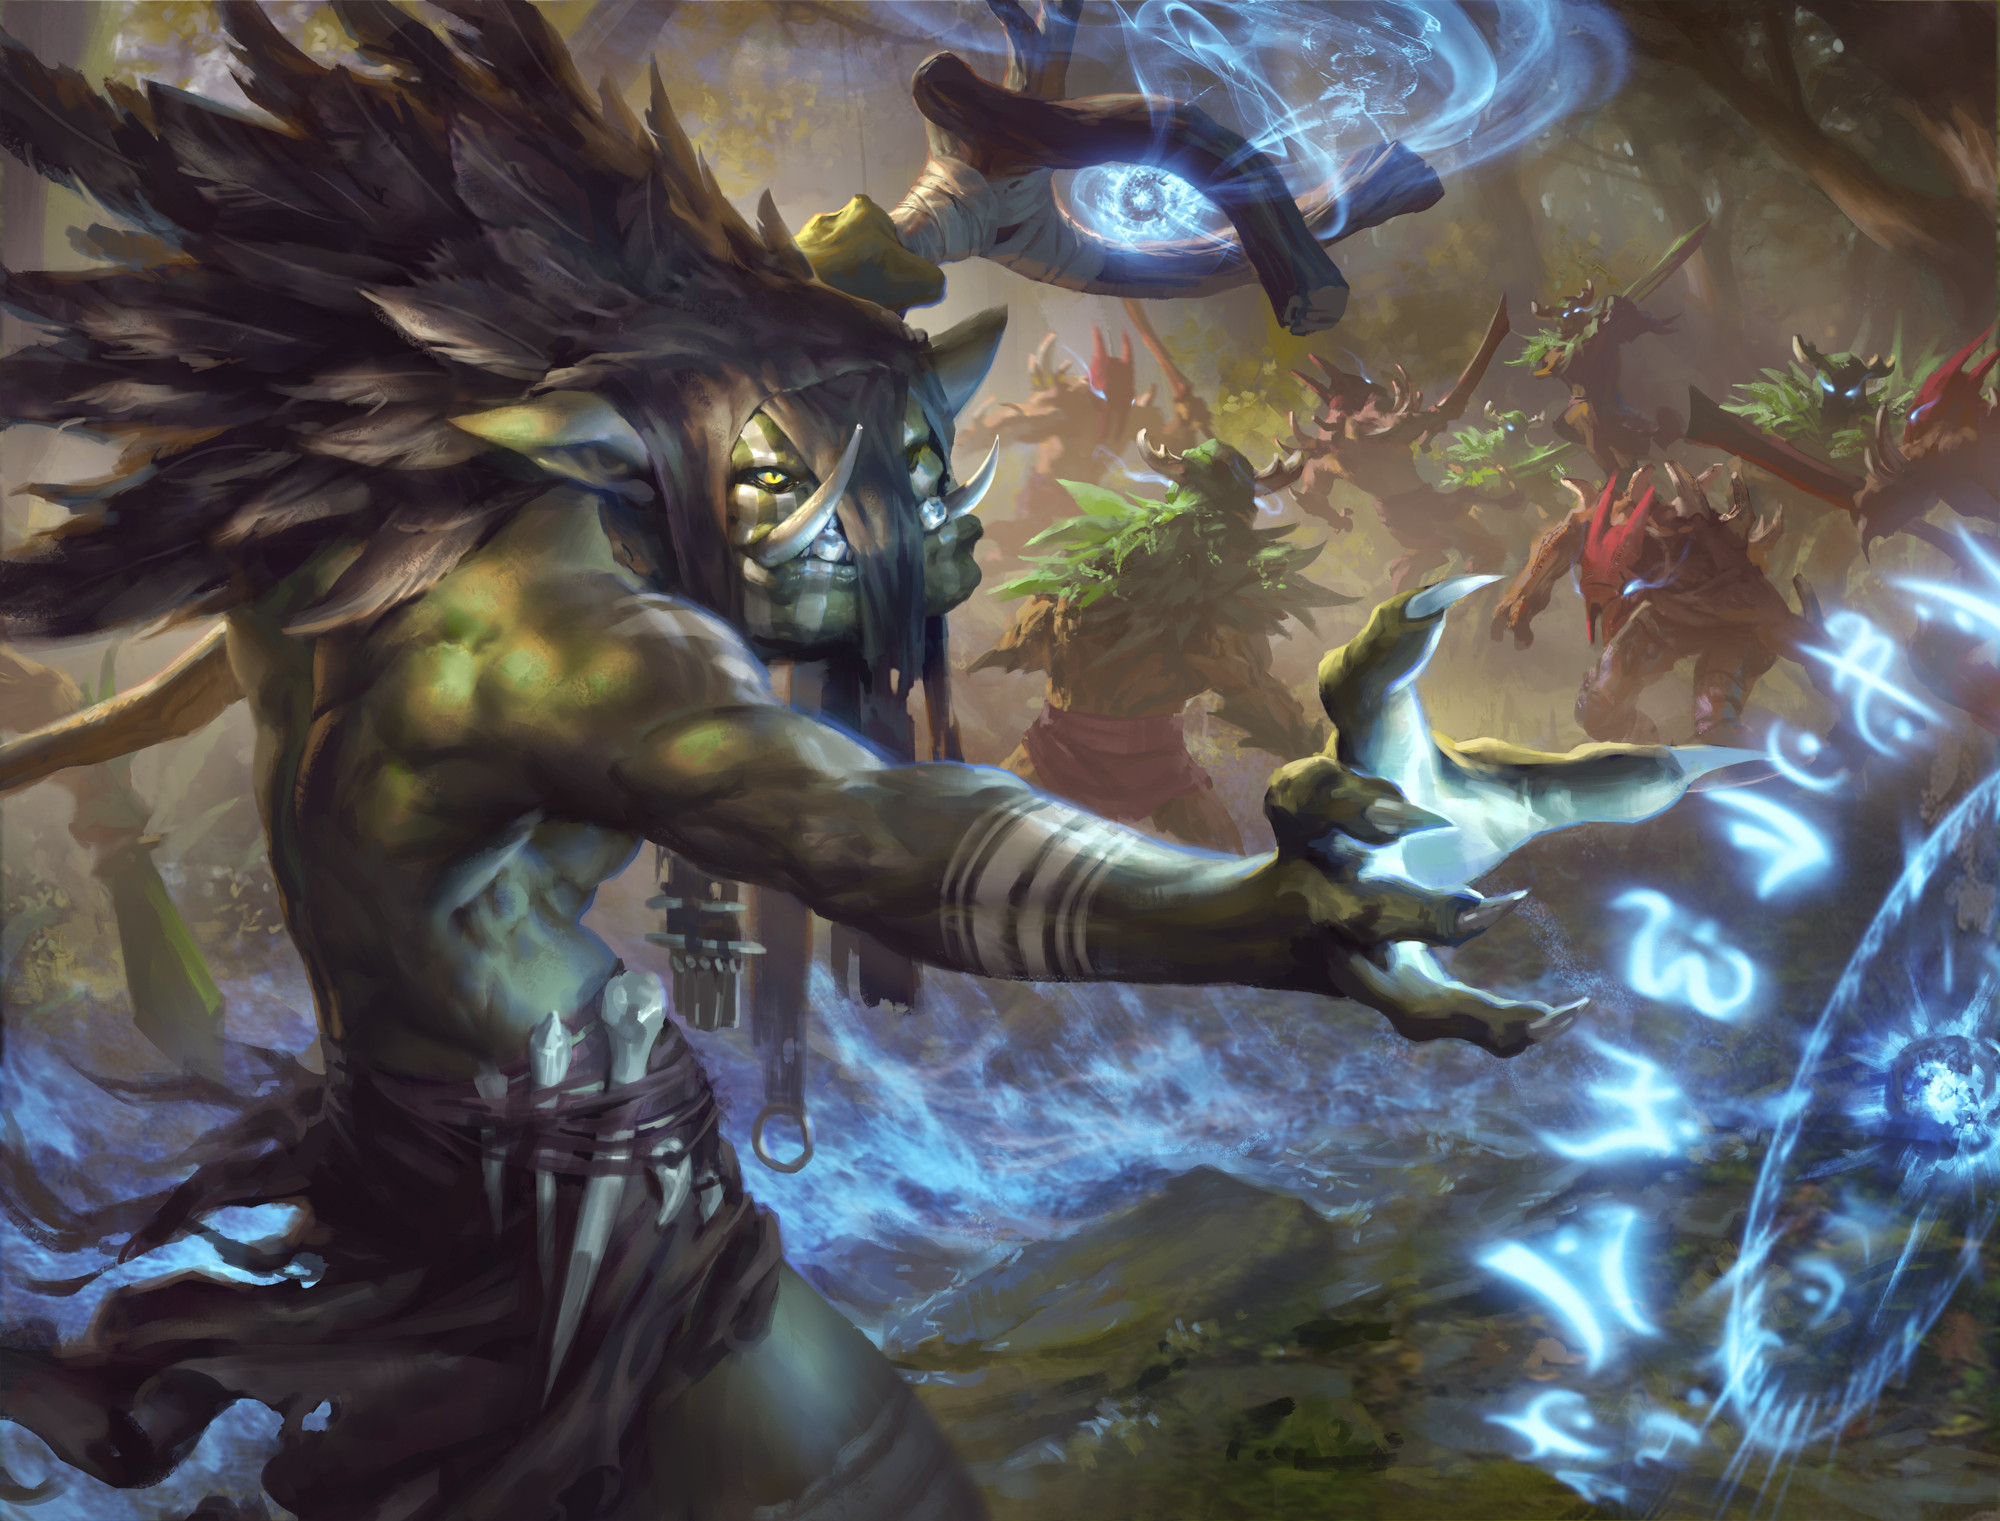 Sometimes the simplest of spells can be the most effective. — J'muy, The Dark Troll Chieftain